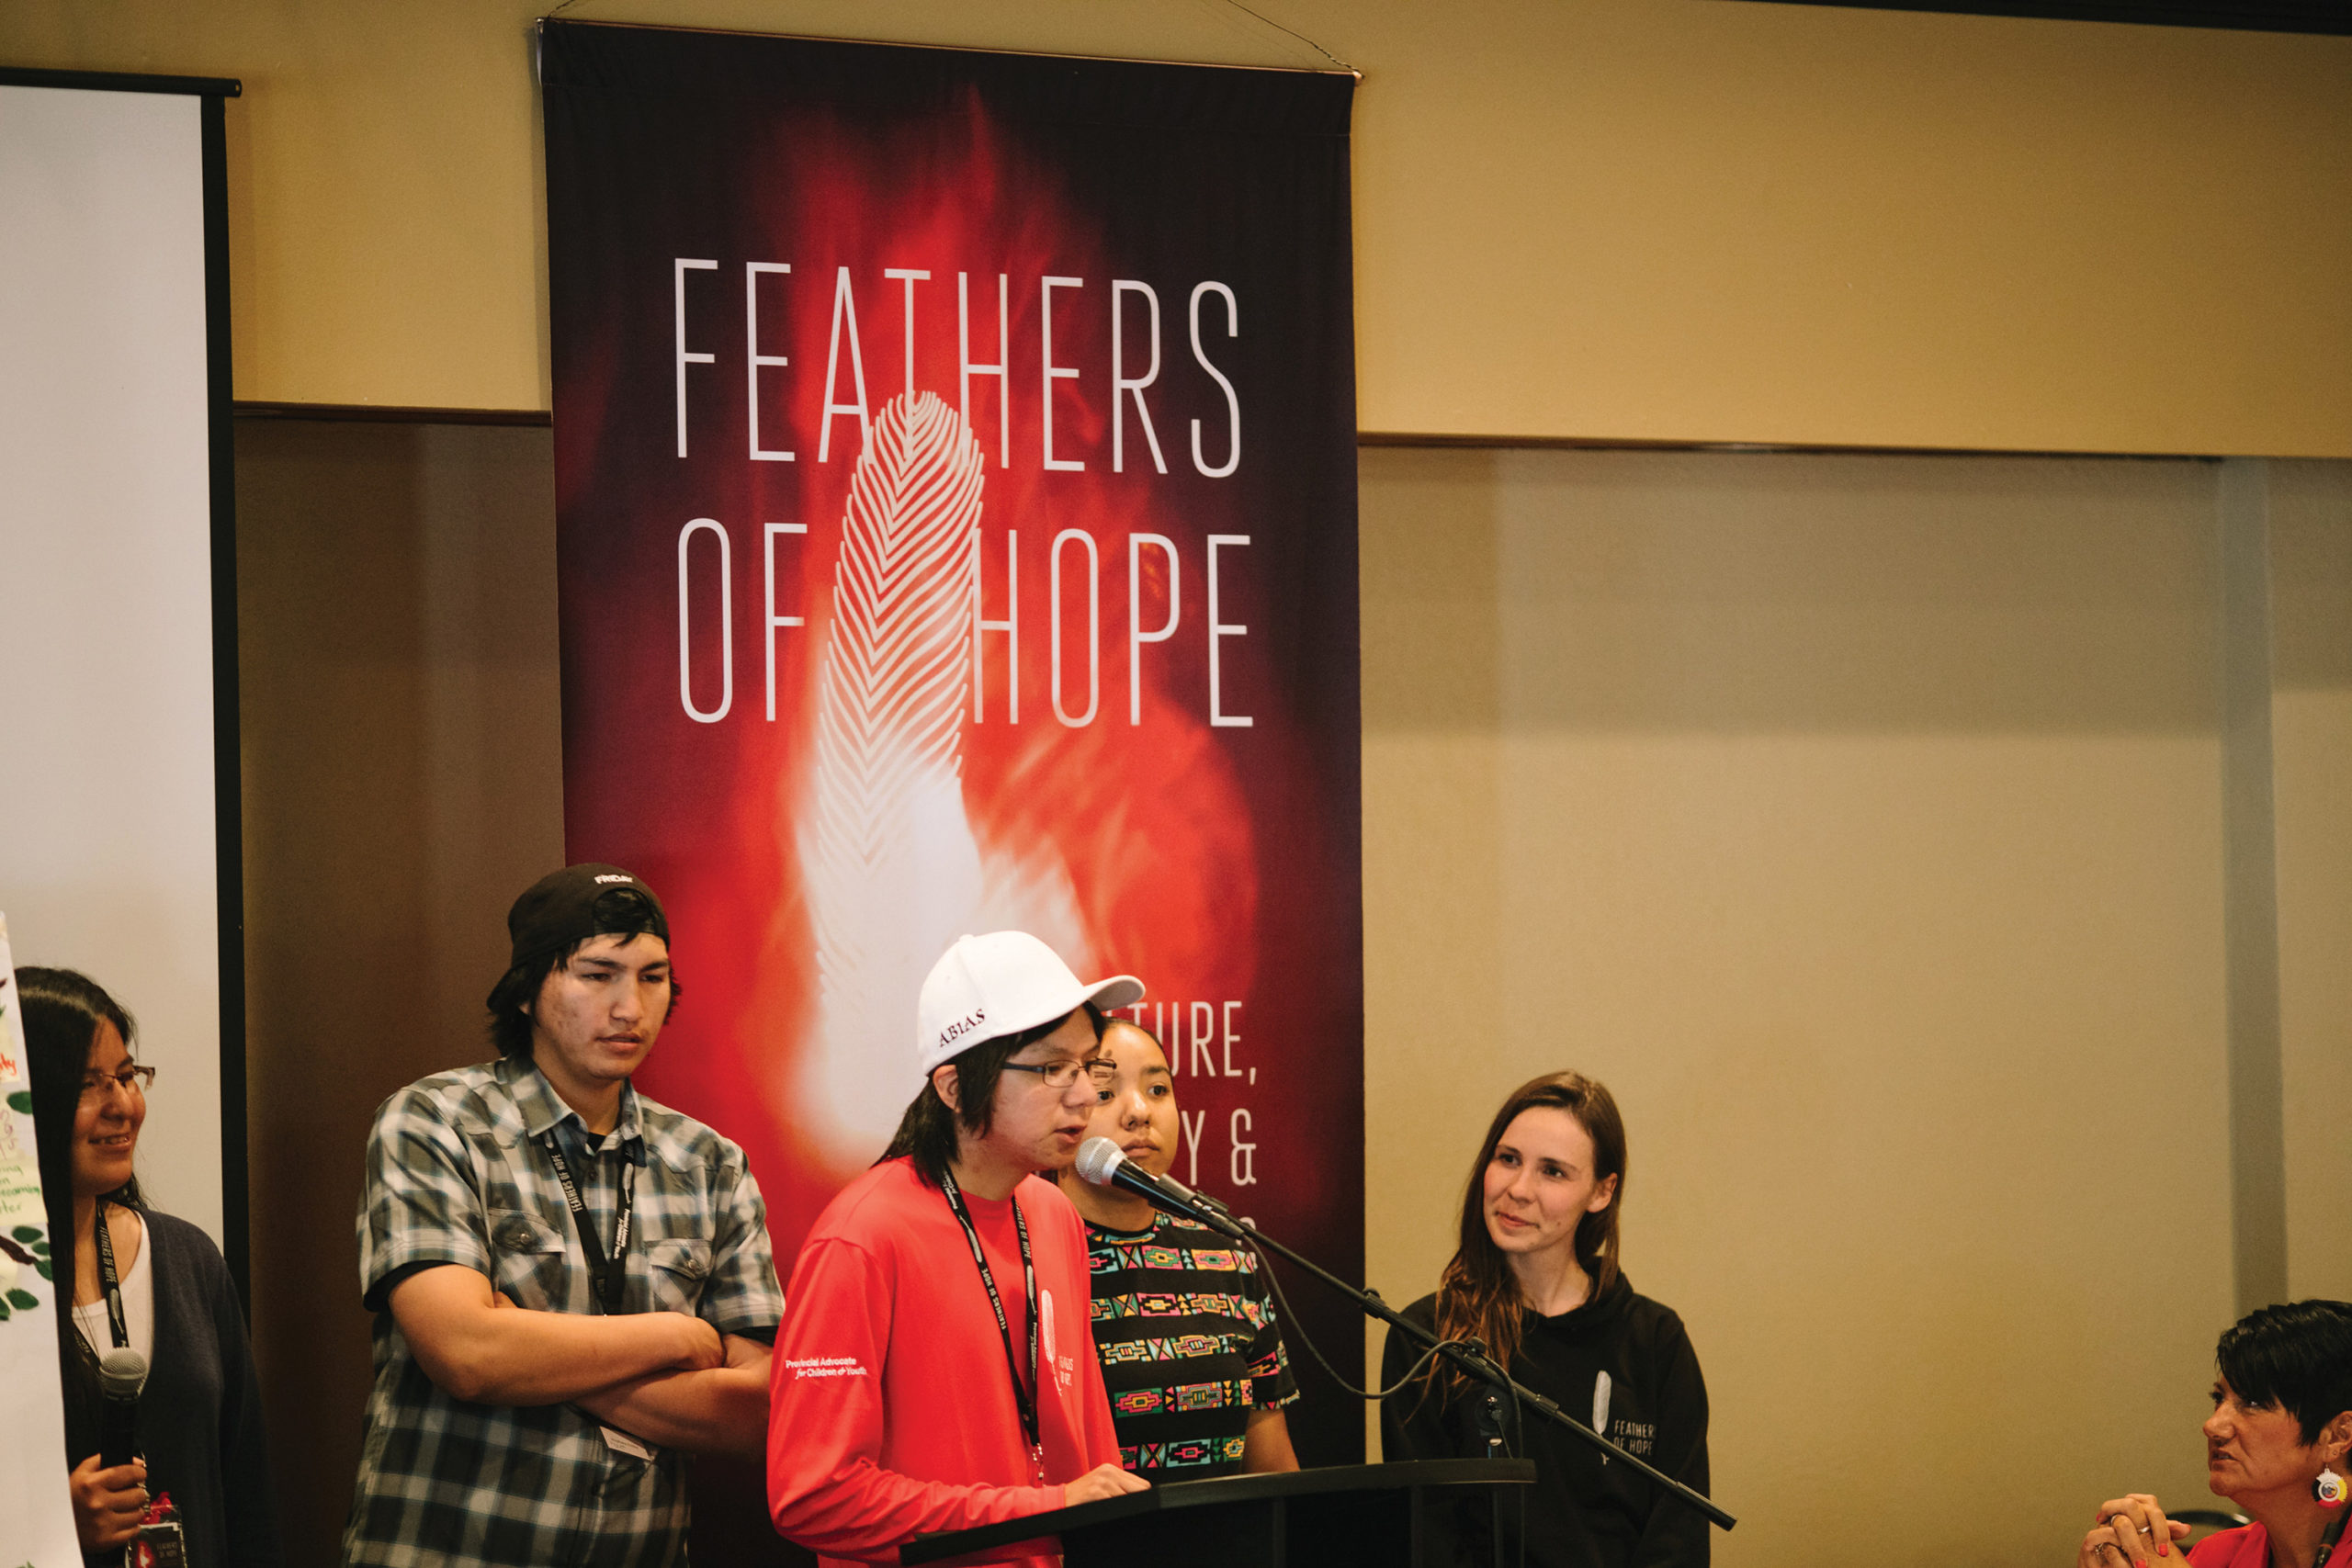 Photo of five young people standing in front of a large, red banner that reads 'Feathers of Hope.' One of them is kneeling over a black stand while they speak over a microphone. The remaining four stand behind, looking determined and strong.